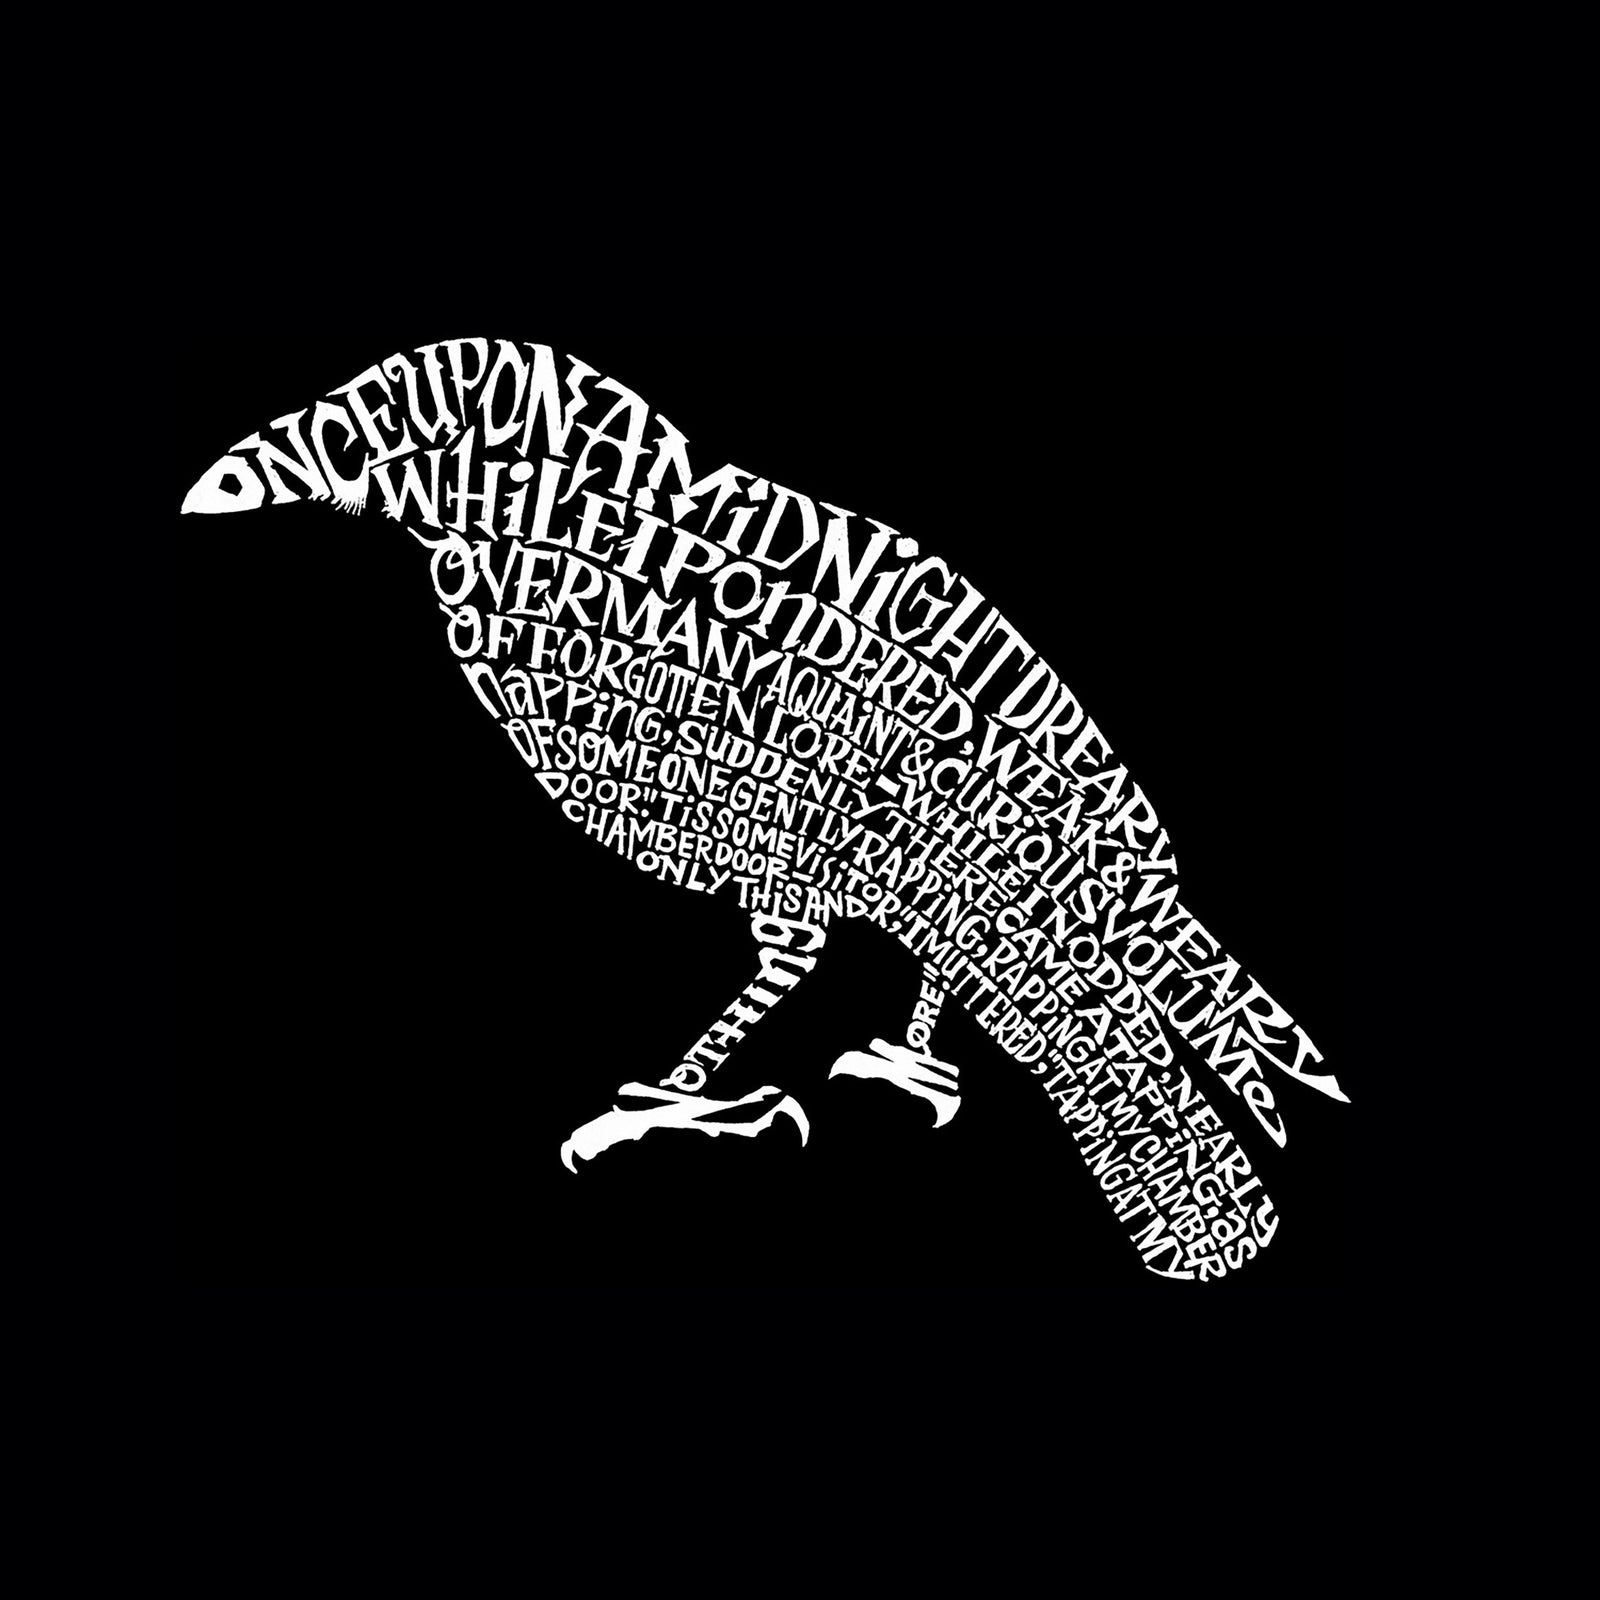 Men's Premium Blend Word Art T-shirt - Edgar Allan Poe's The Raven